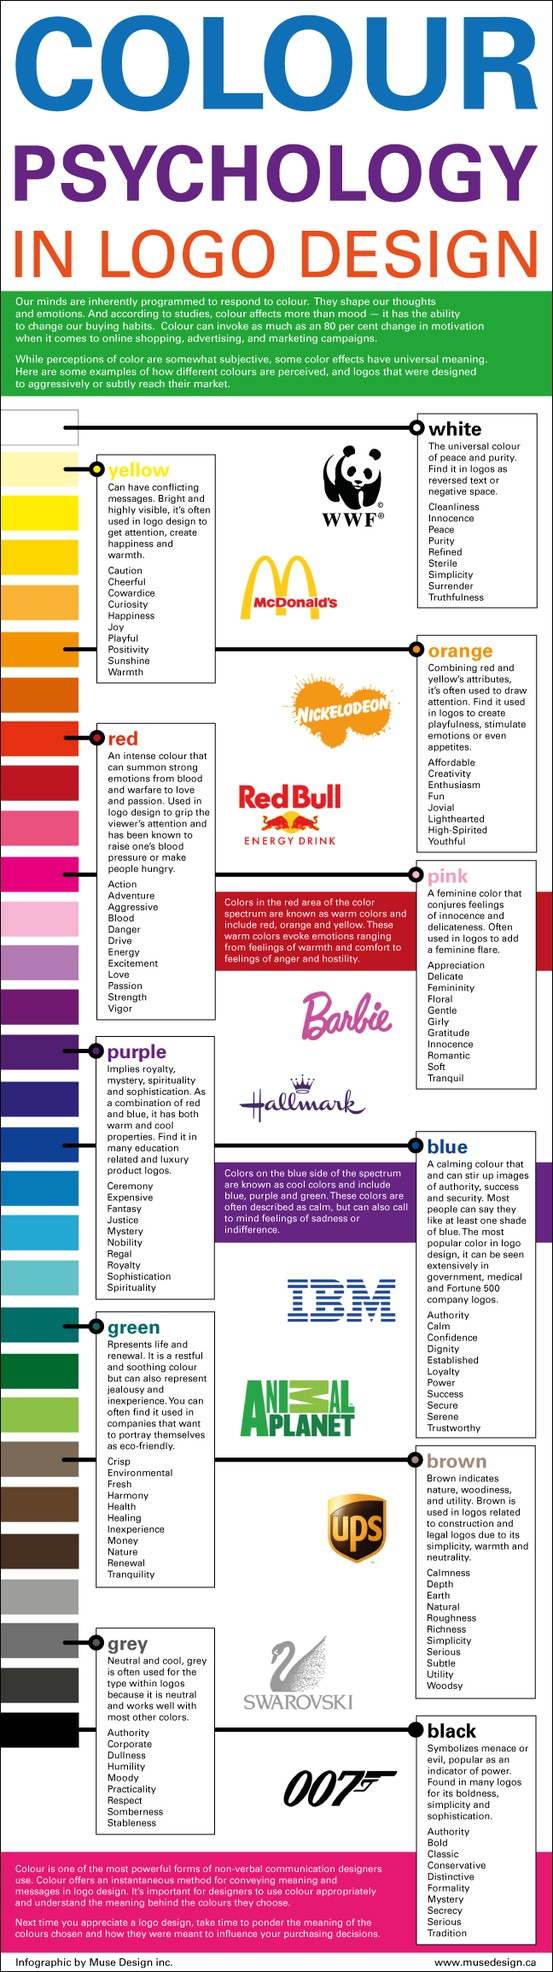 color-psychology-in-logo-design_5030f8bf7a1e7.jpg